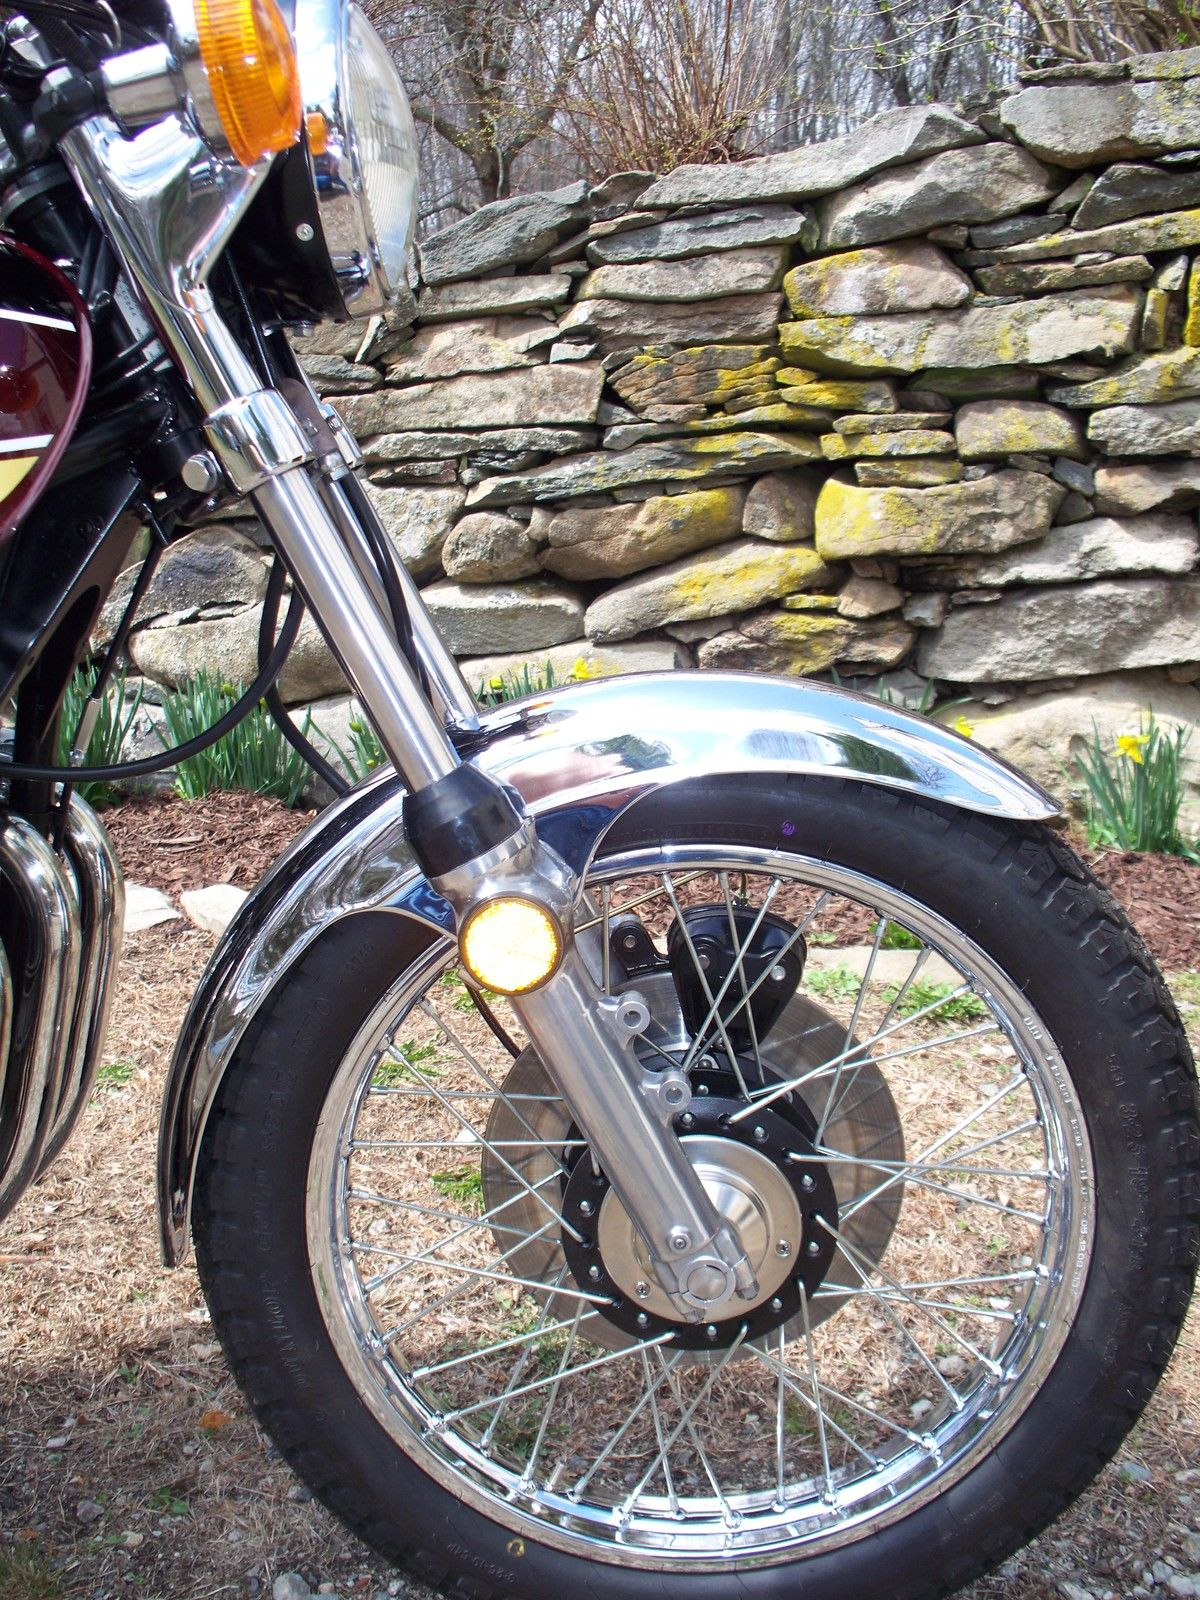 Kawasaki Z1 - 1975 - Front Fender, Front Wheel and Forks,